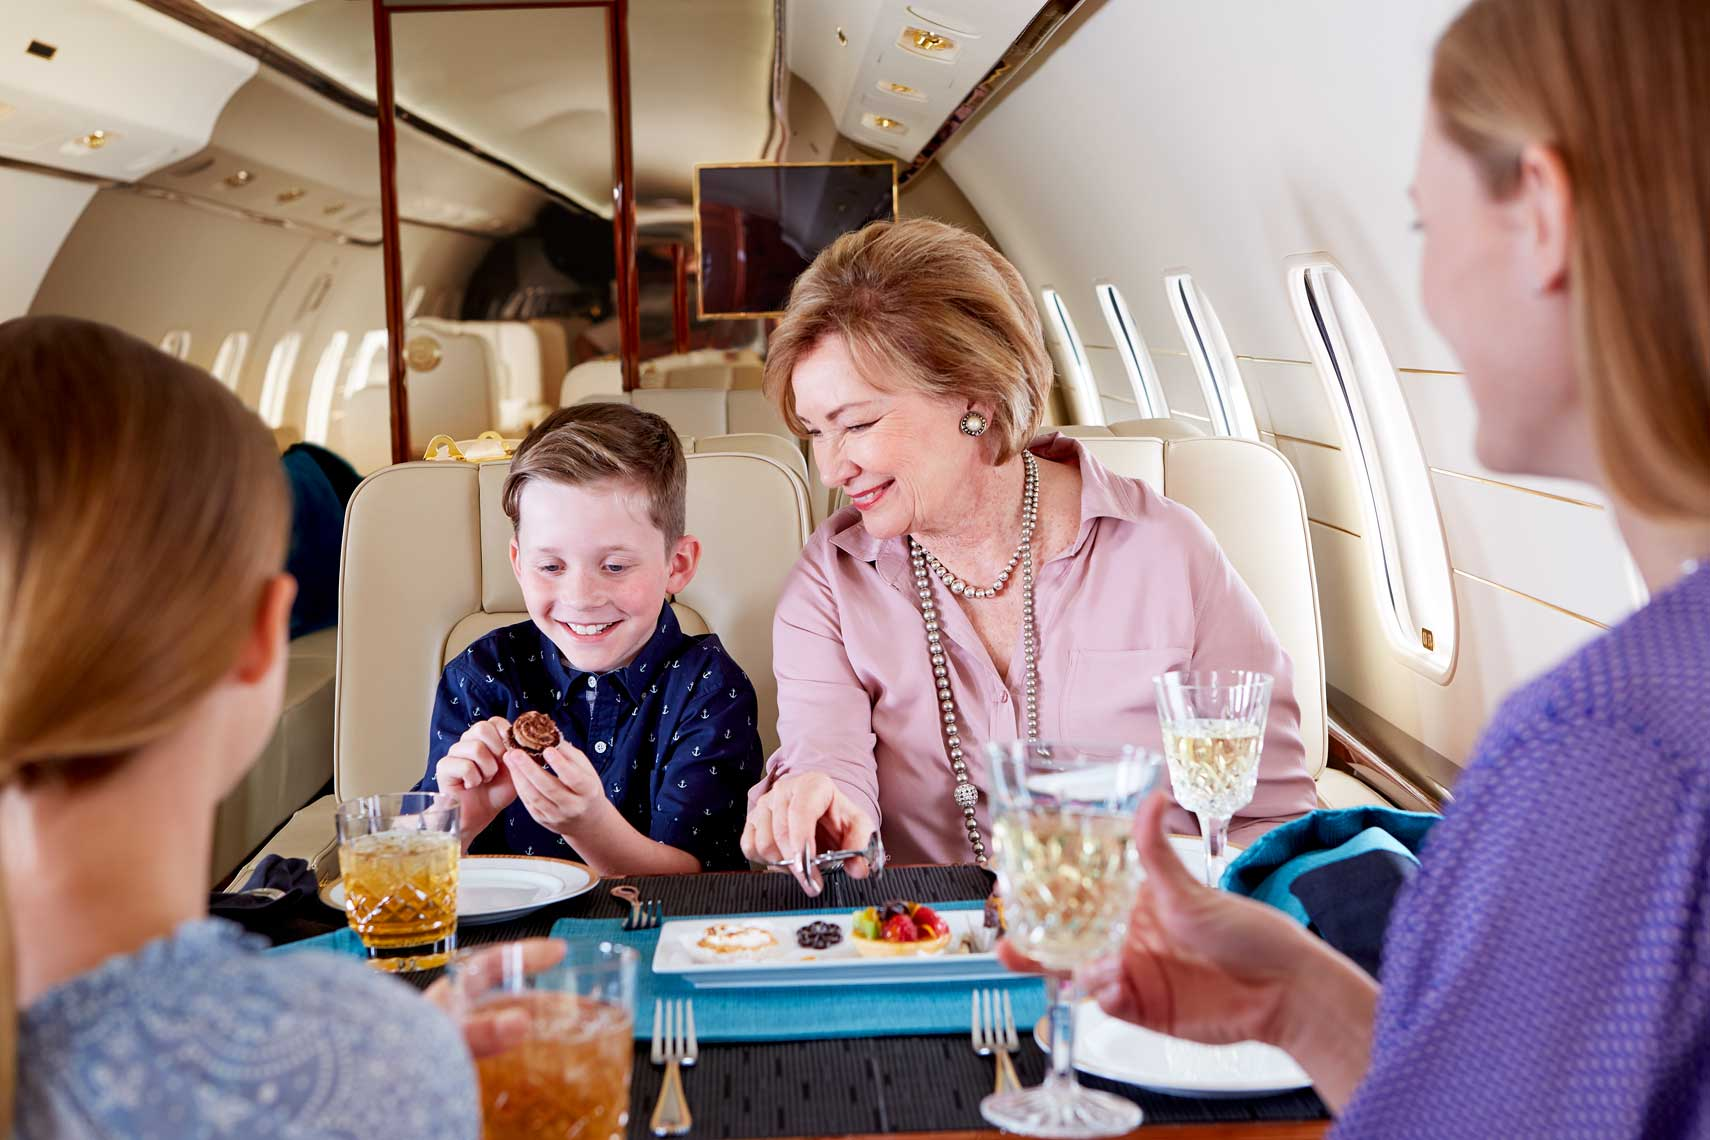 0_MillionAir2017_24_HOMEPAGE_InsideJet-Mom-Gma-Kids_4622-1